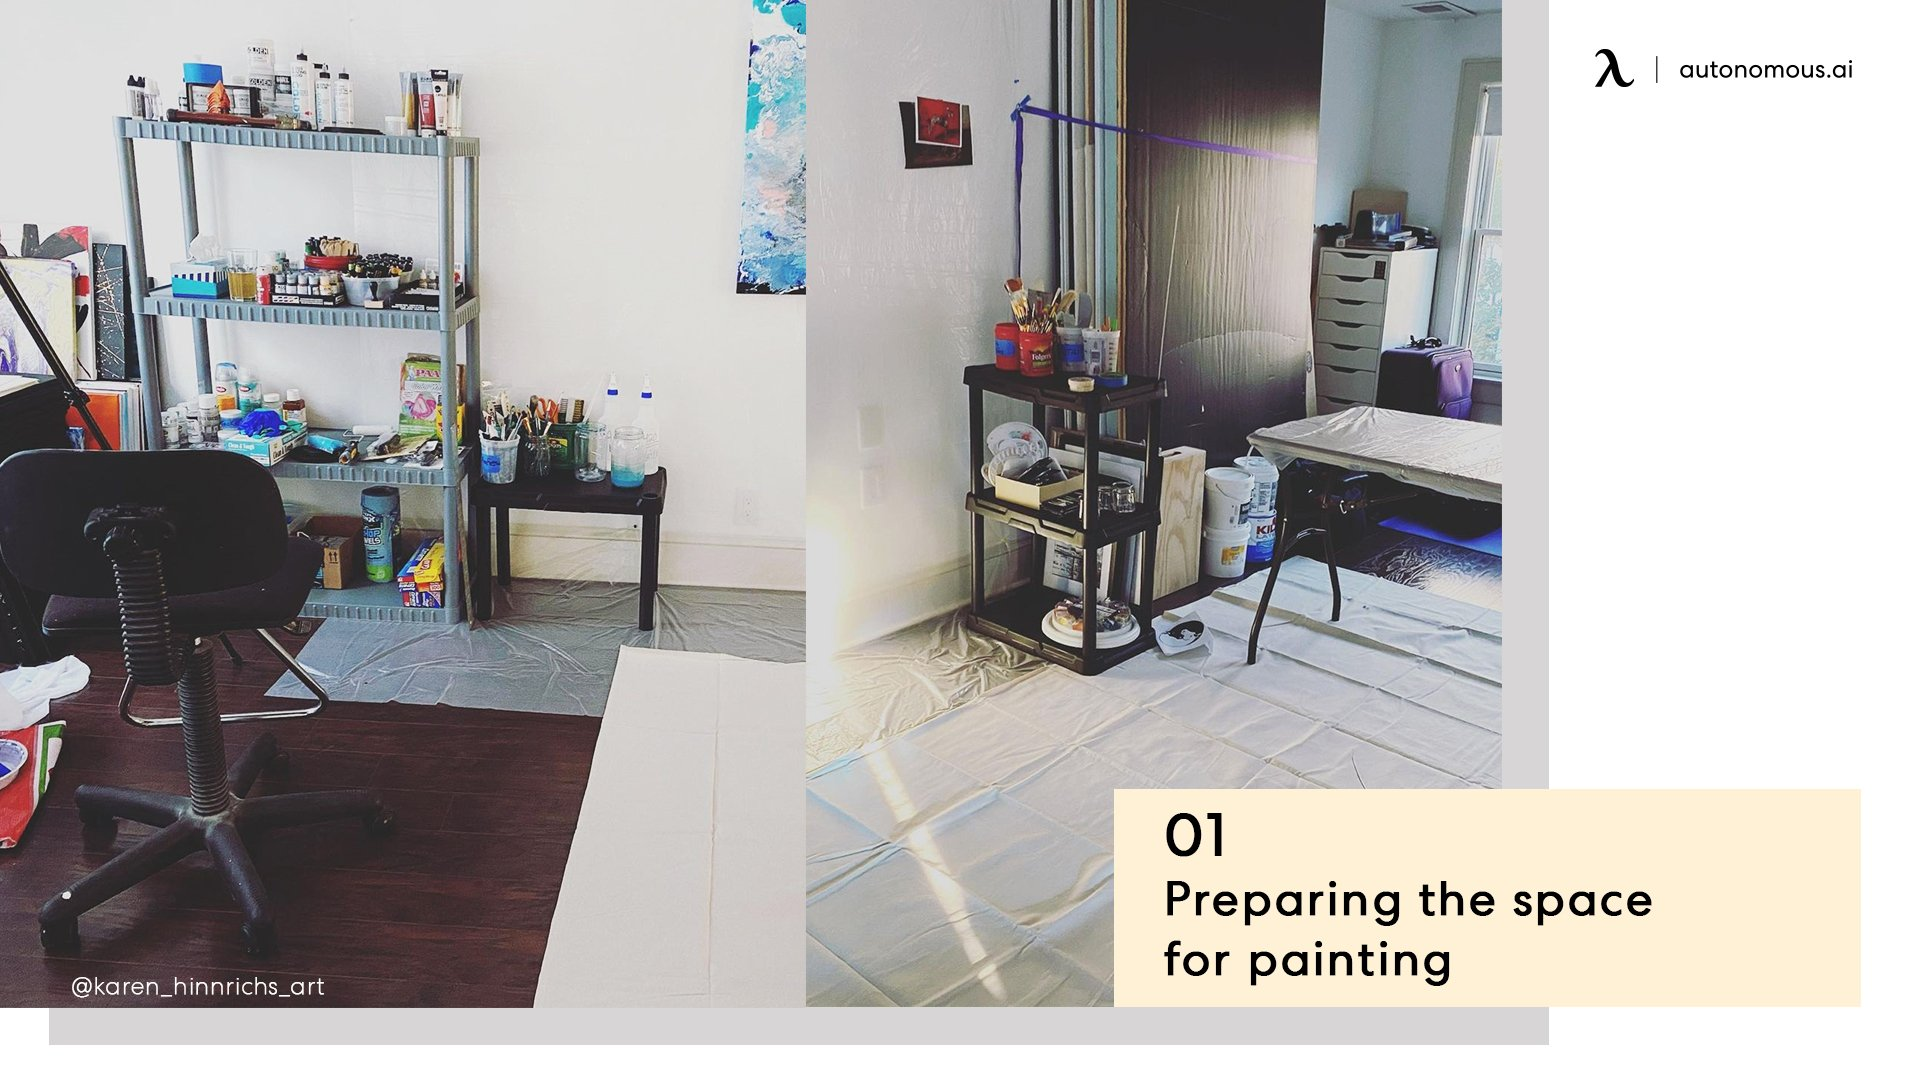 Preparing space for painting